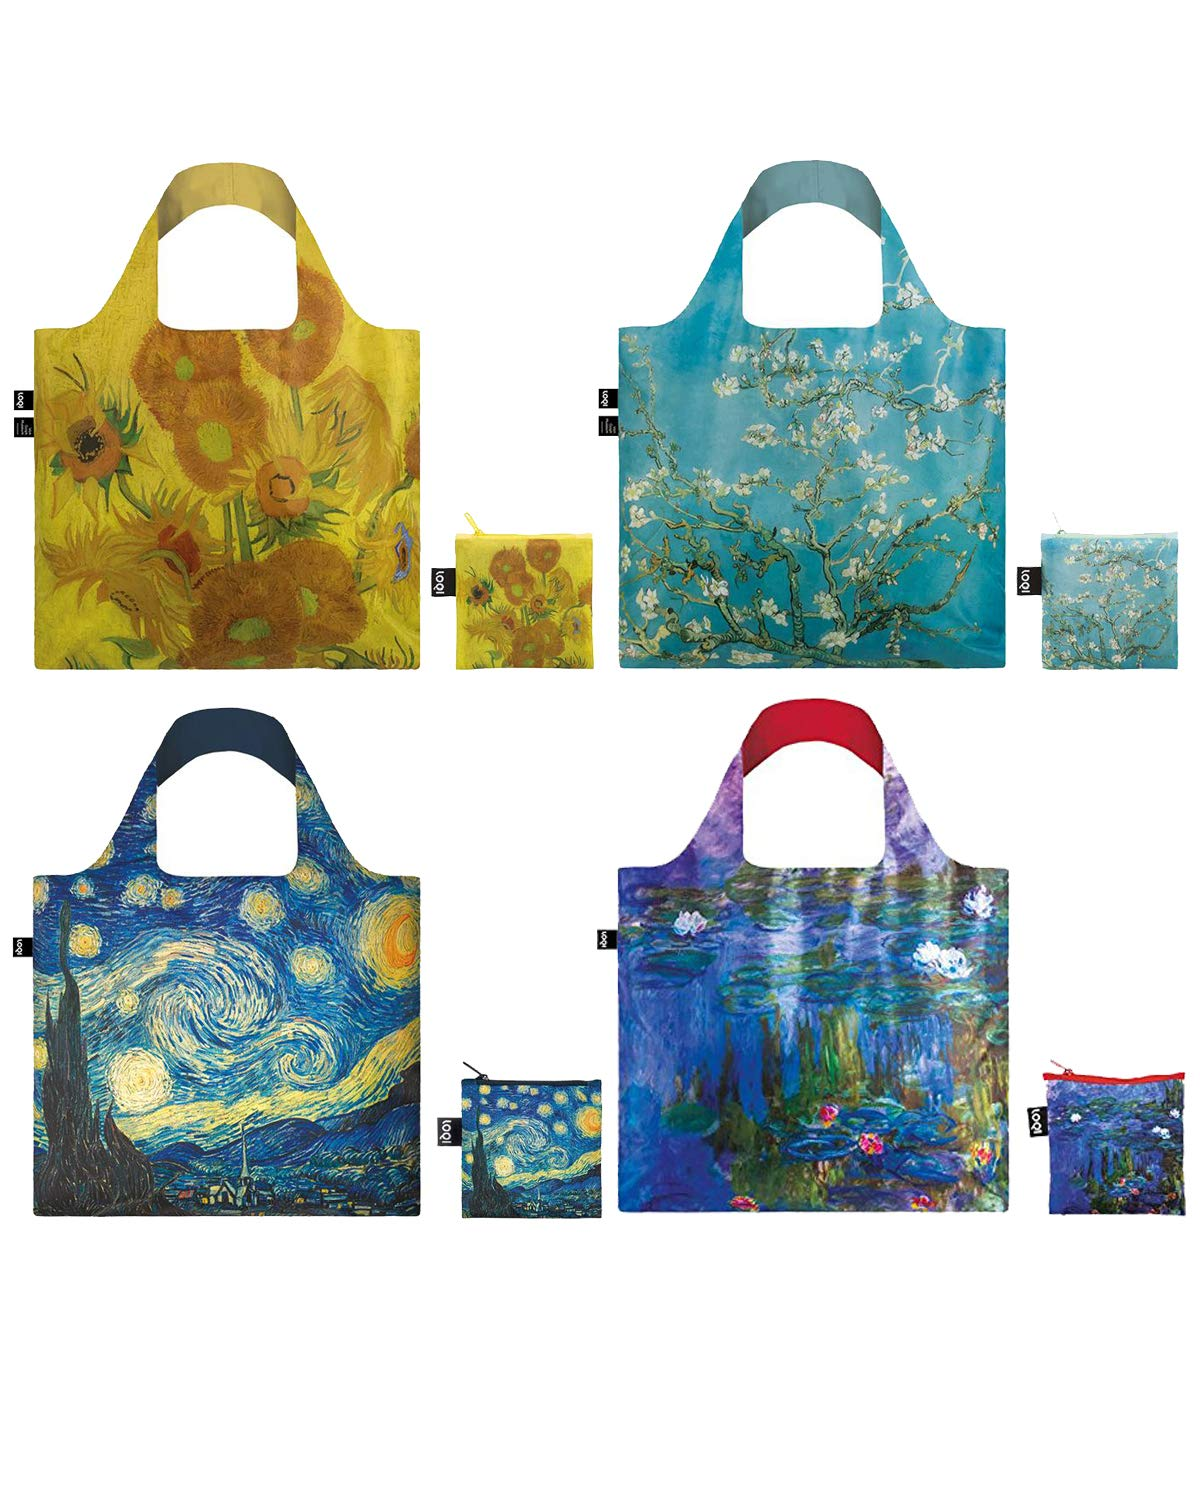 LOQI CU.CO.12 Museum12 Collection Pouch Reusable Bags, Set of 4, by LOQI